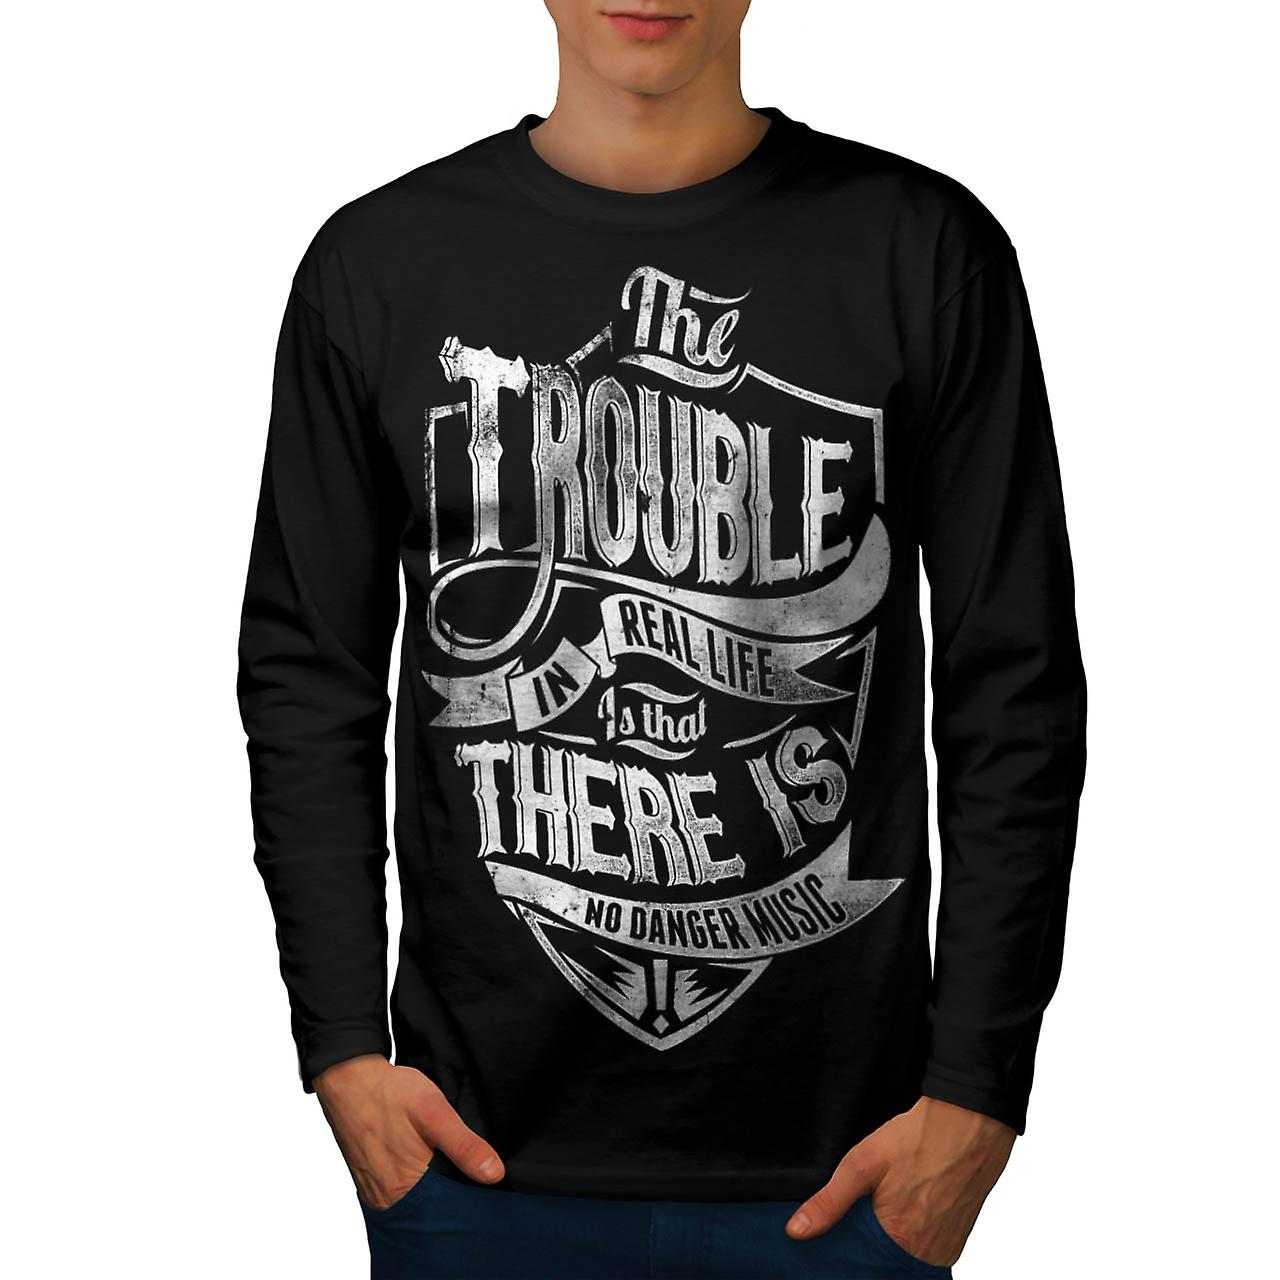 Real Life Danger Tune Music Beat Men Black Long Sleeve T-shirt | Wellcoda